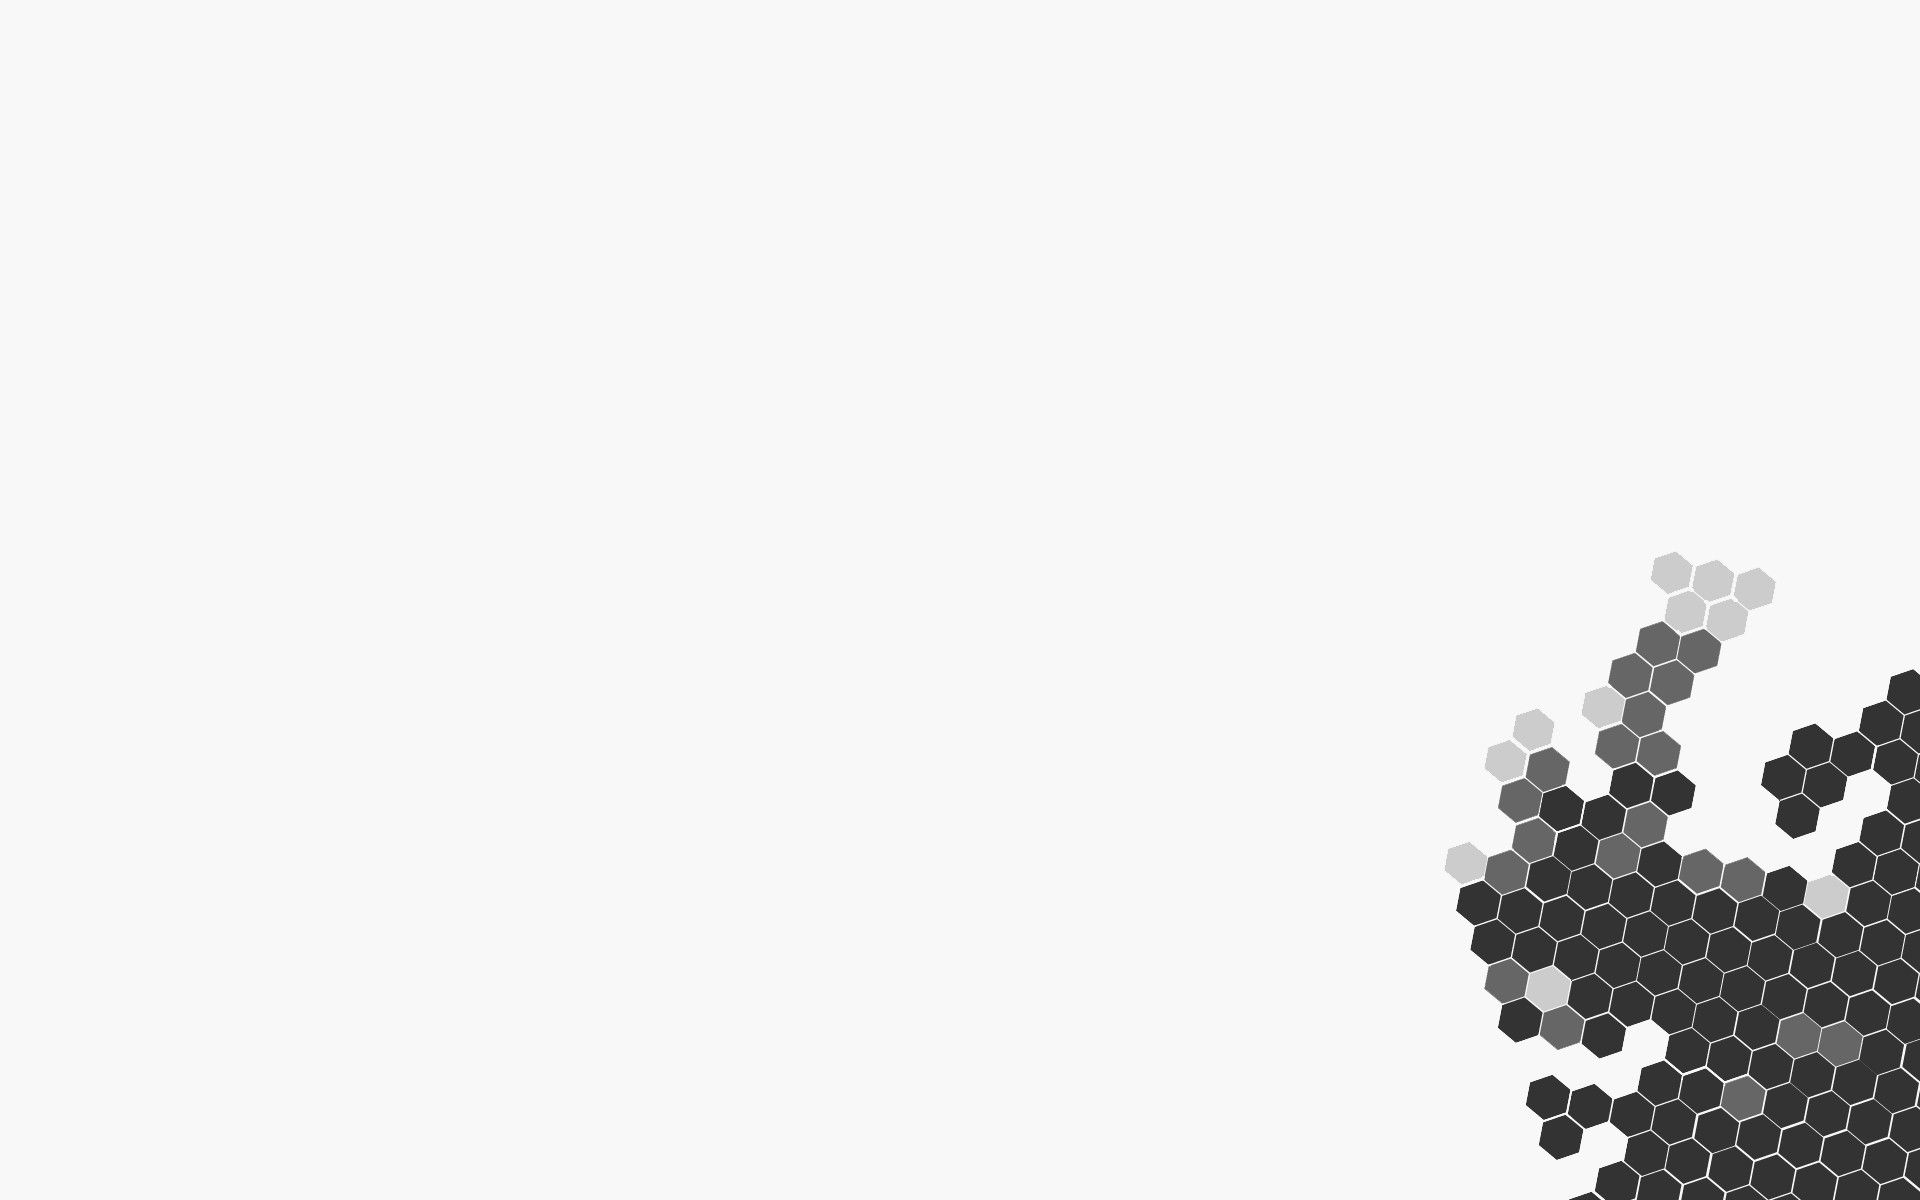 White Background HD Wallpapers Backgrounds Of Your Choice